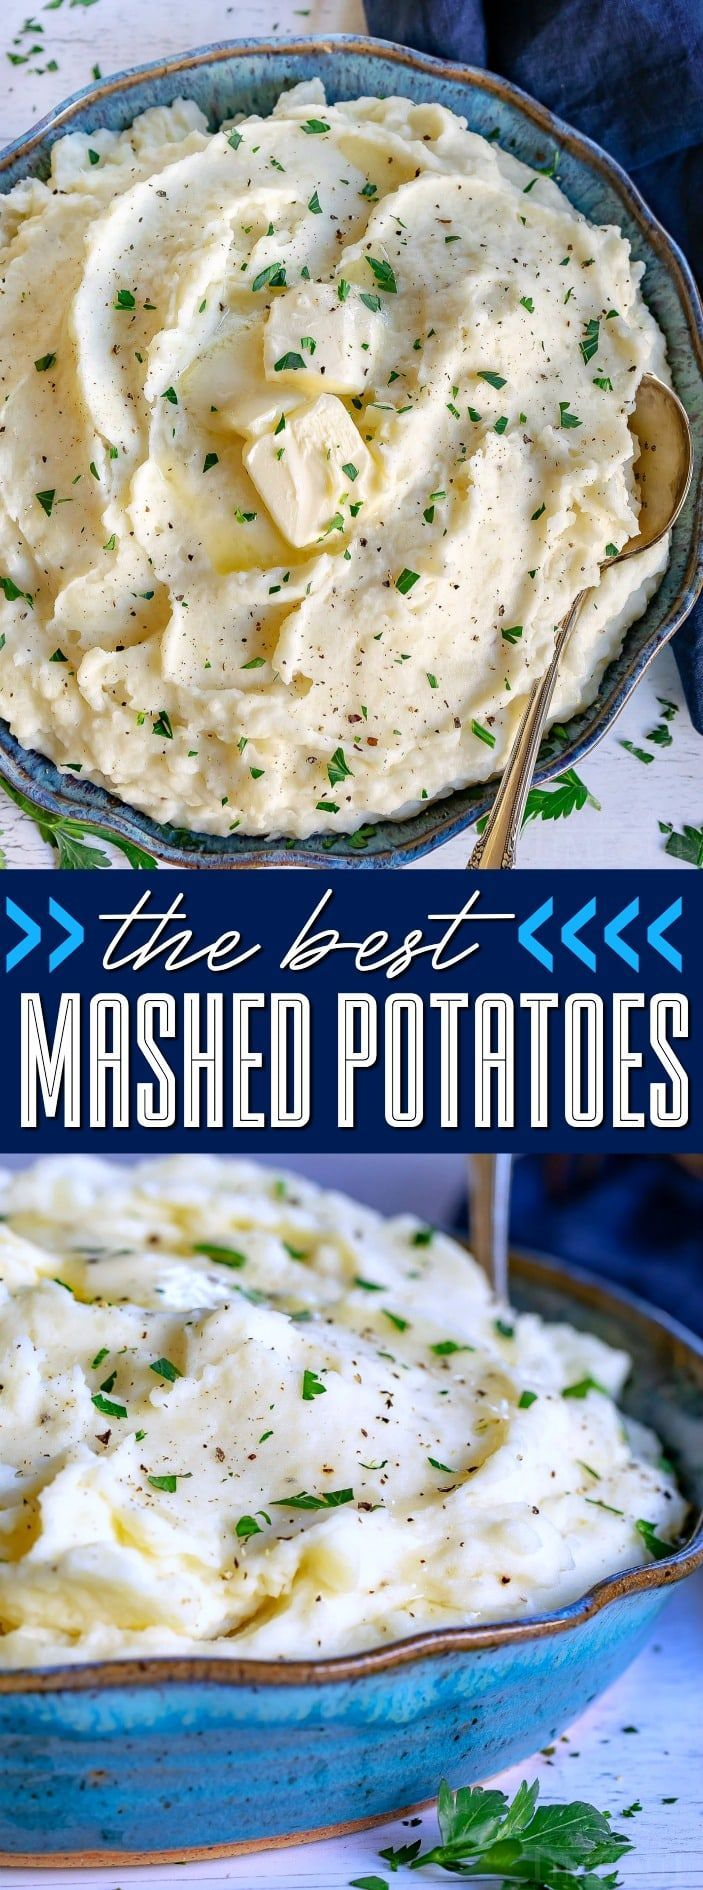 The BEST Mashed Potatoes! Easy, fluffy, creamy, delicious!